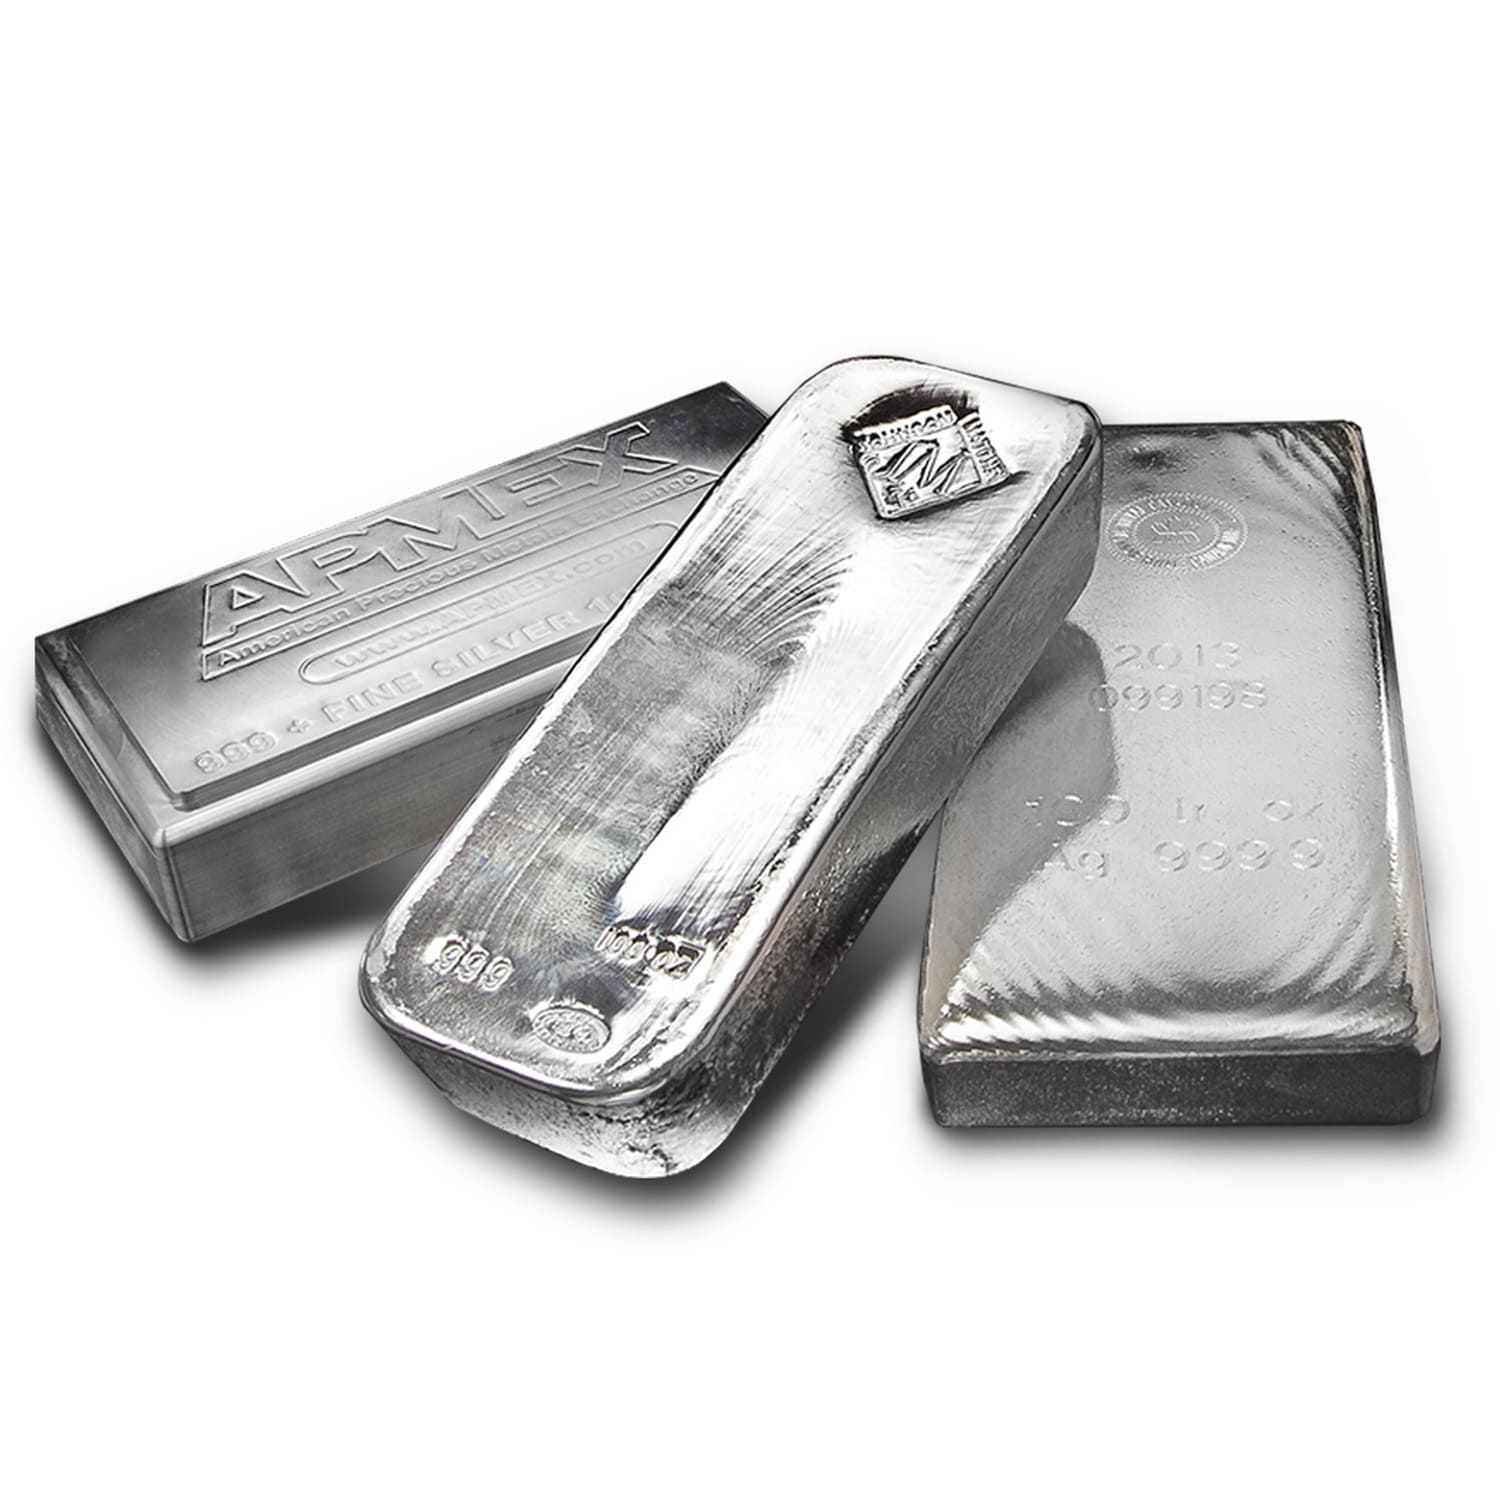 101.89 oz Silver Bars - Secondary Market